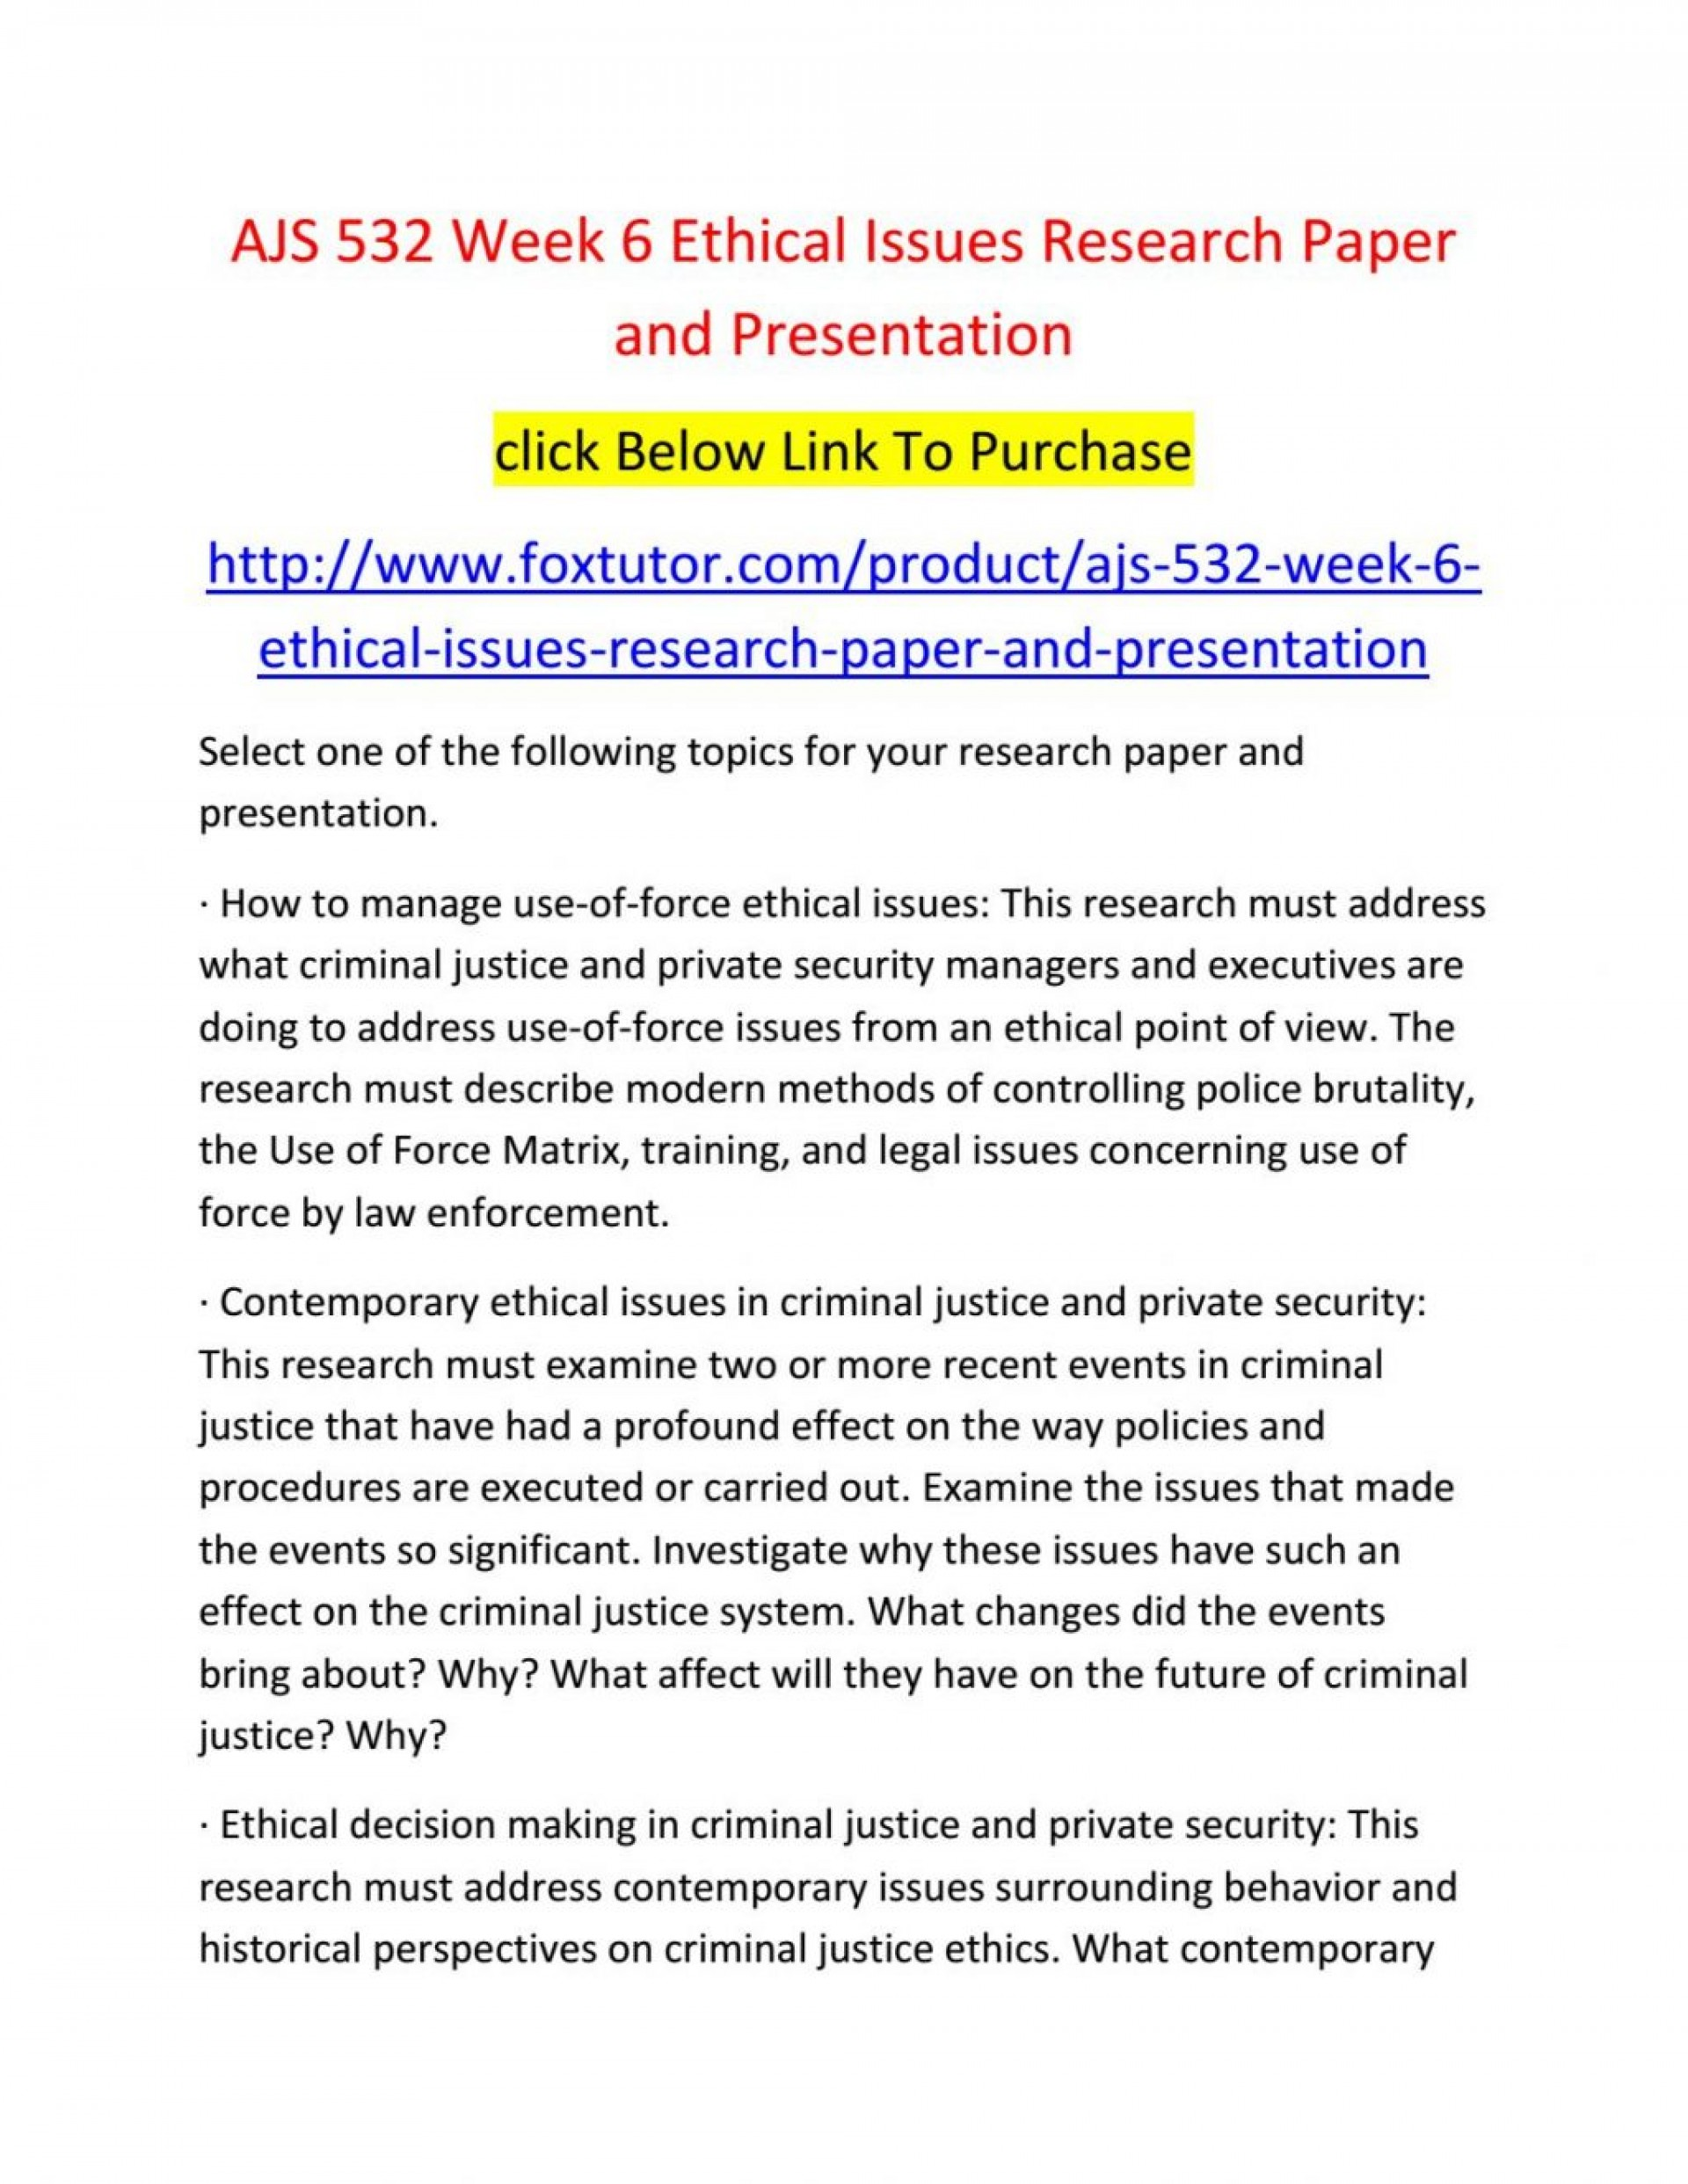 020 Criminal Justice Research Paper Topics 20law Enforcement Ideas Samples Ajs Week20 Fearsome 100 1920